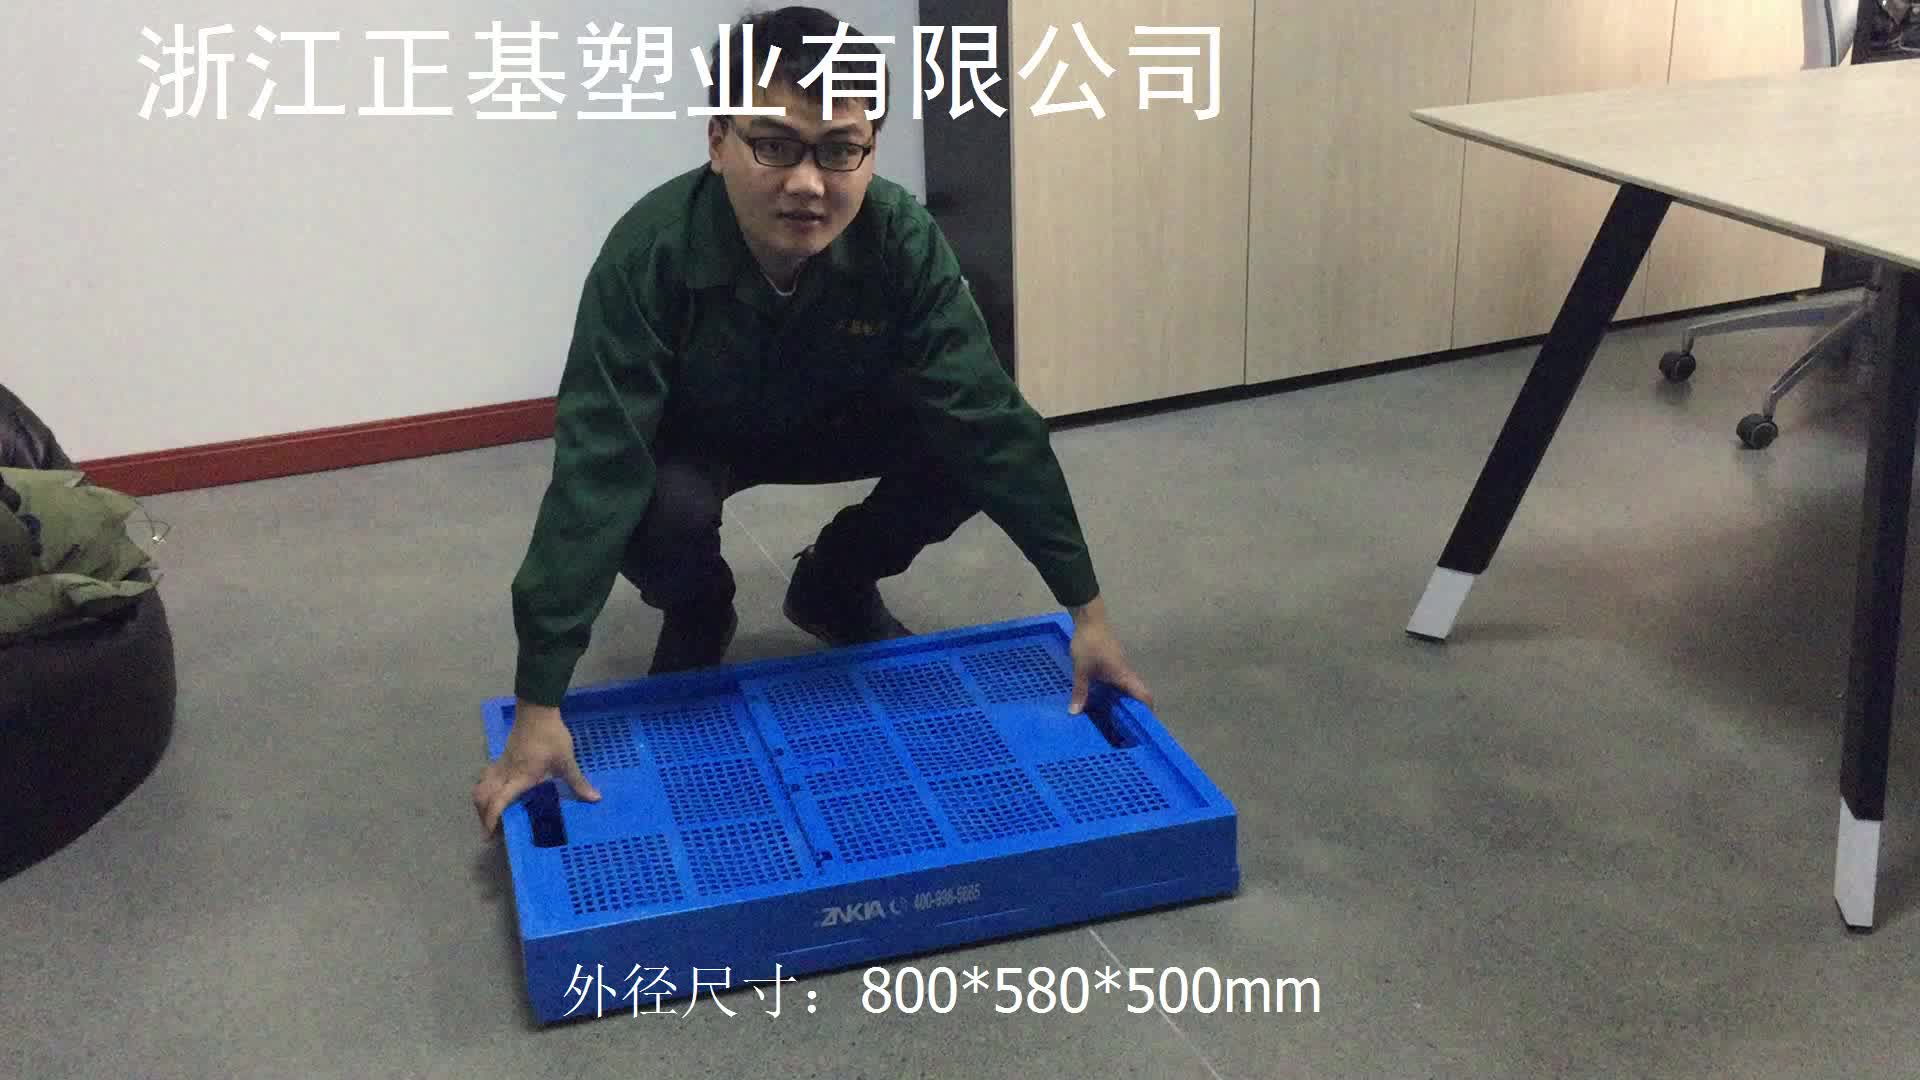 Hot sale plastic container boxes, high quality big box plastic moving containers